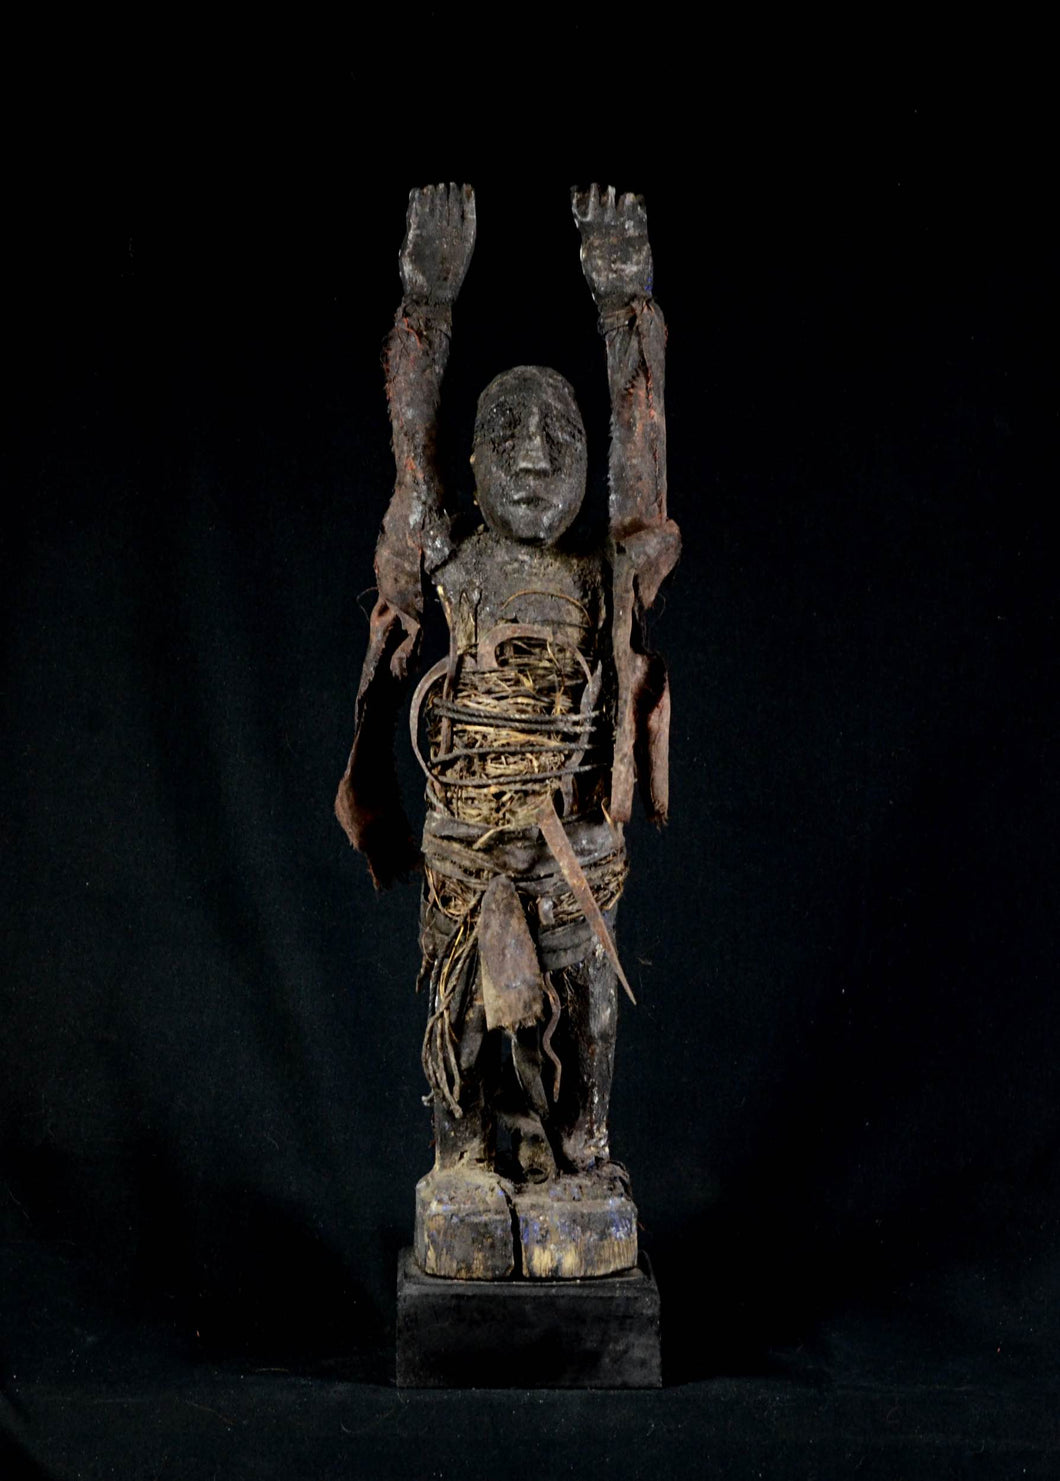 Fon Bocio Fetish with arms raised - Benin